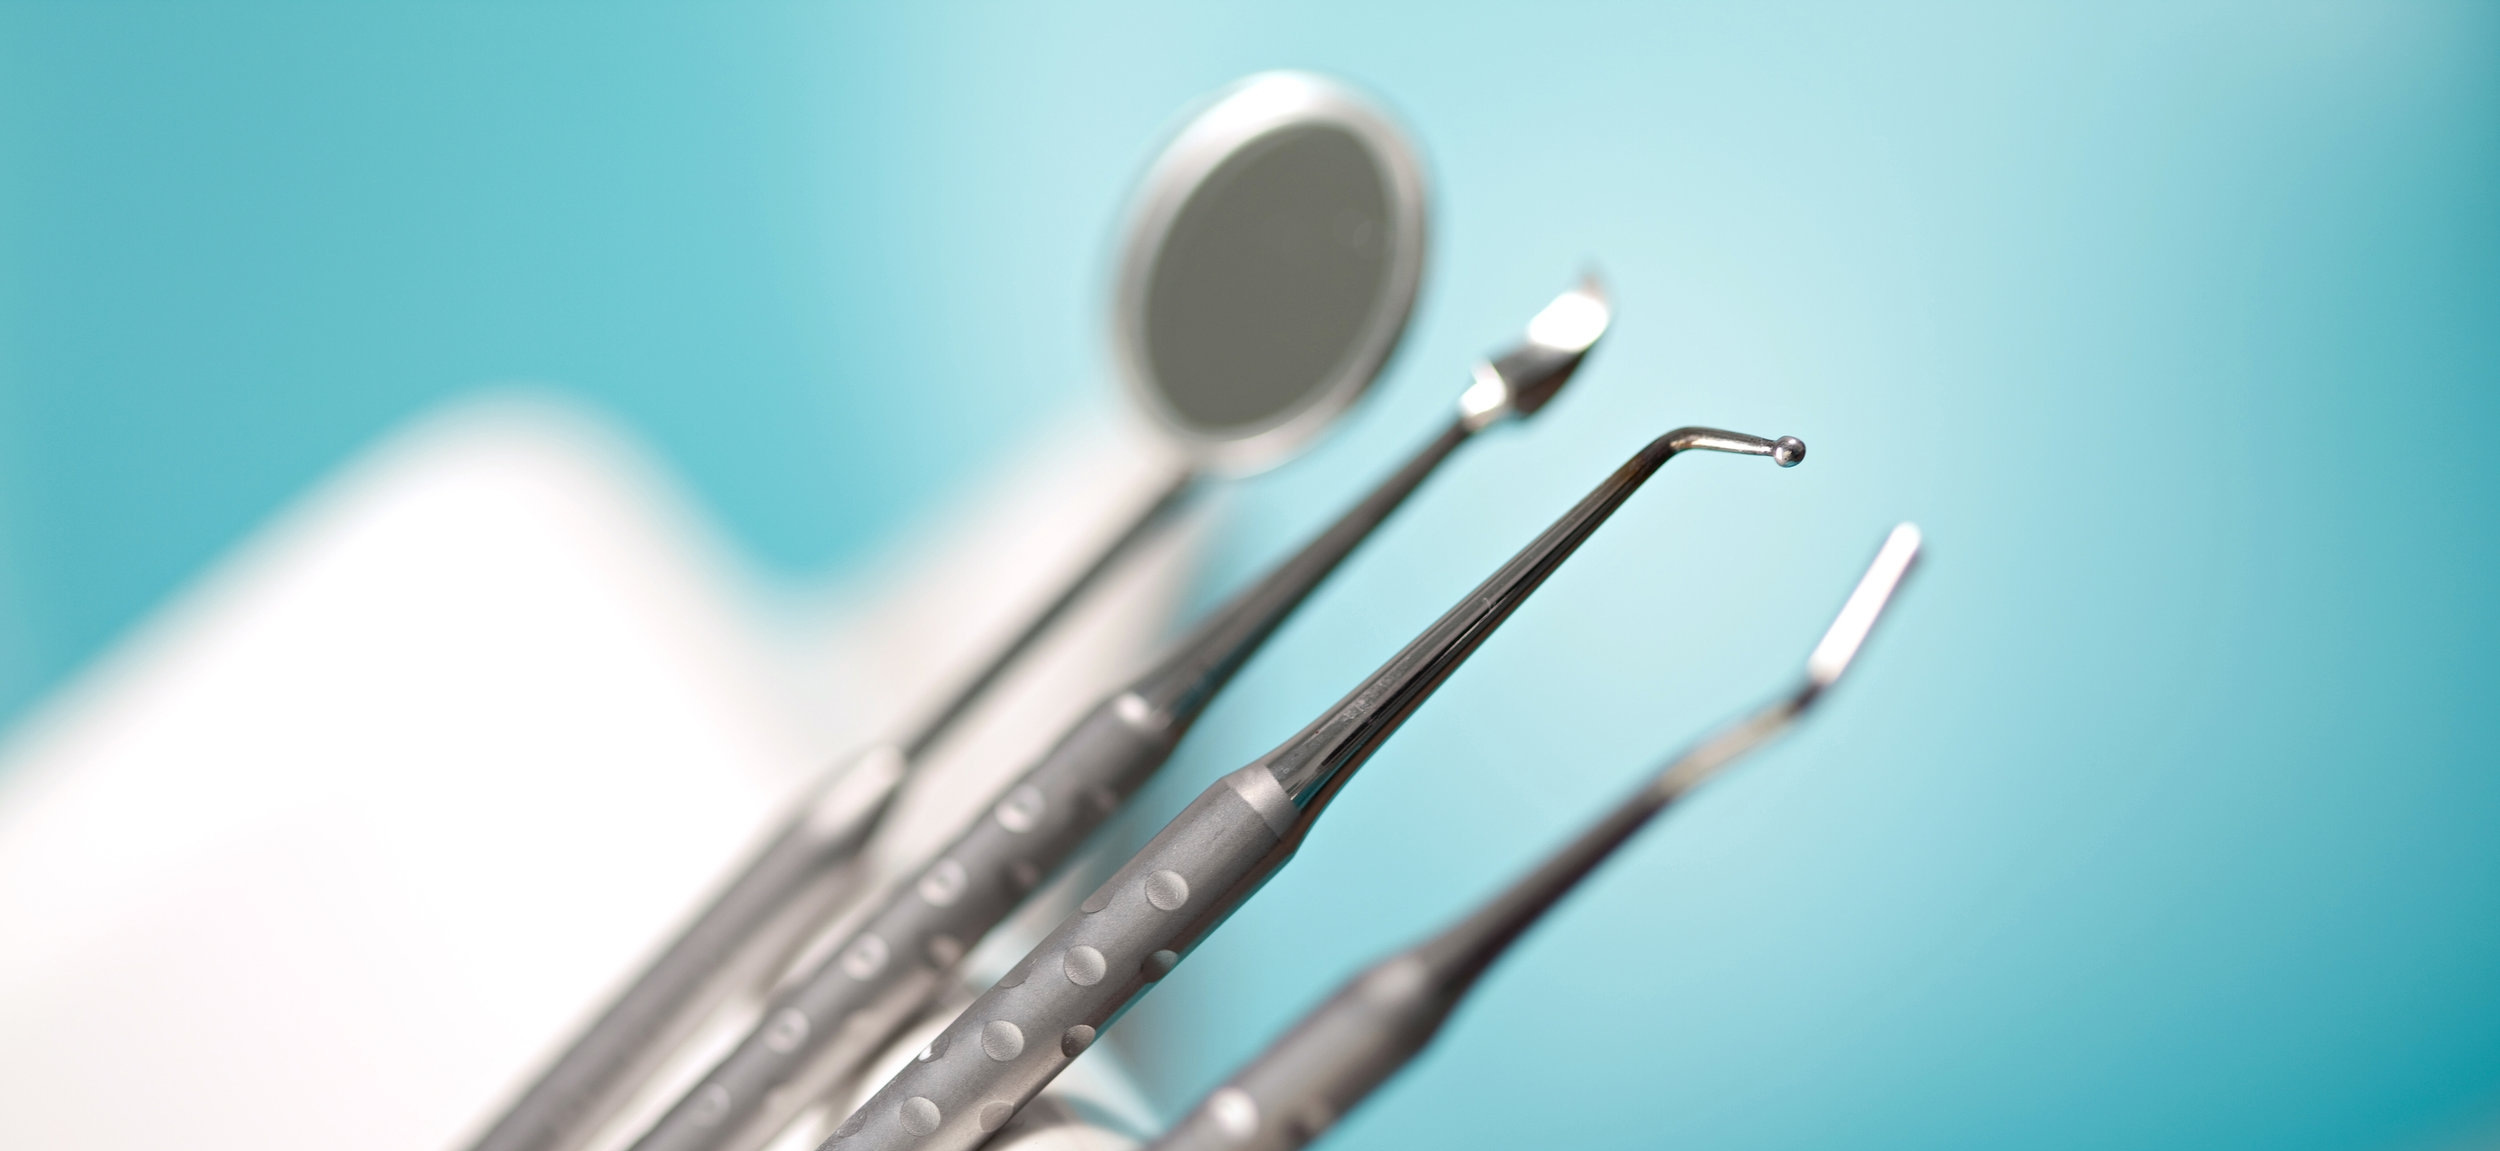 sally vail istock image dental tools.jpg